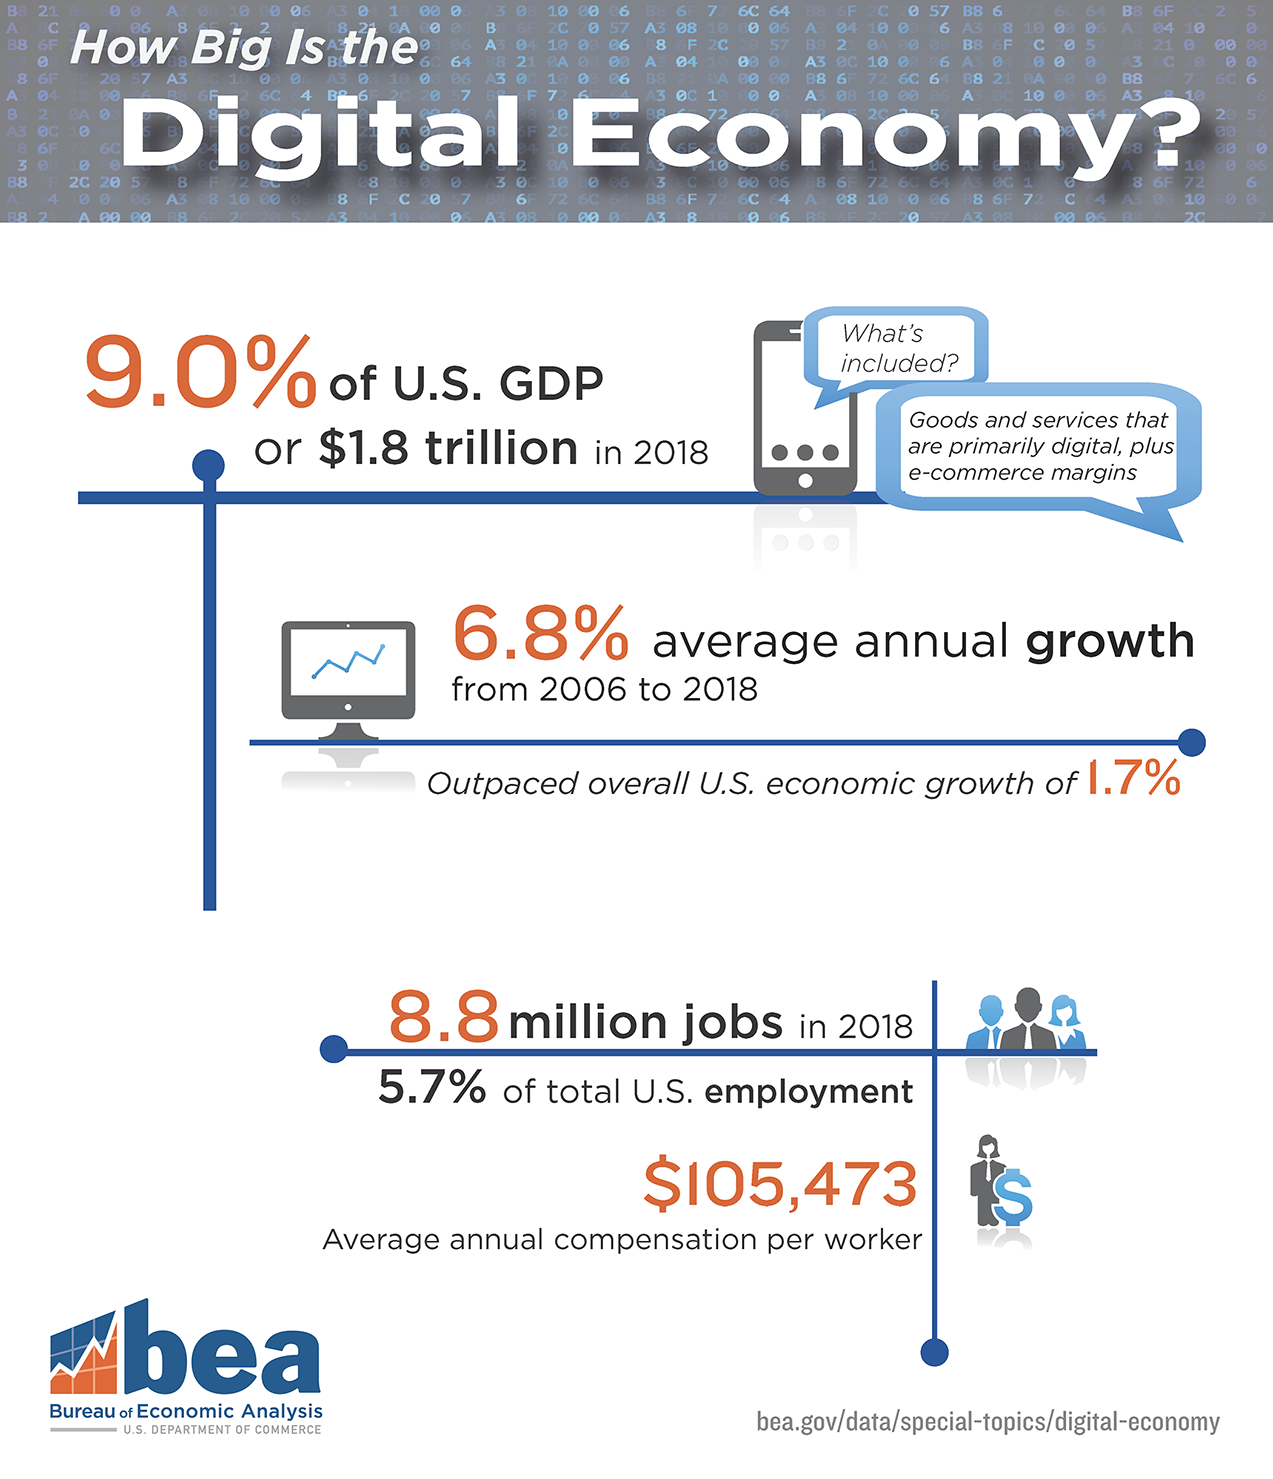 How Big is the Digital Economy? 2018